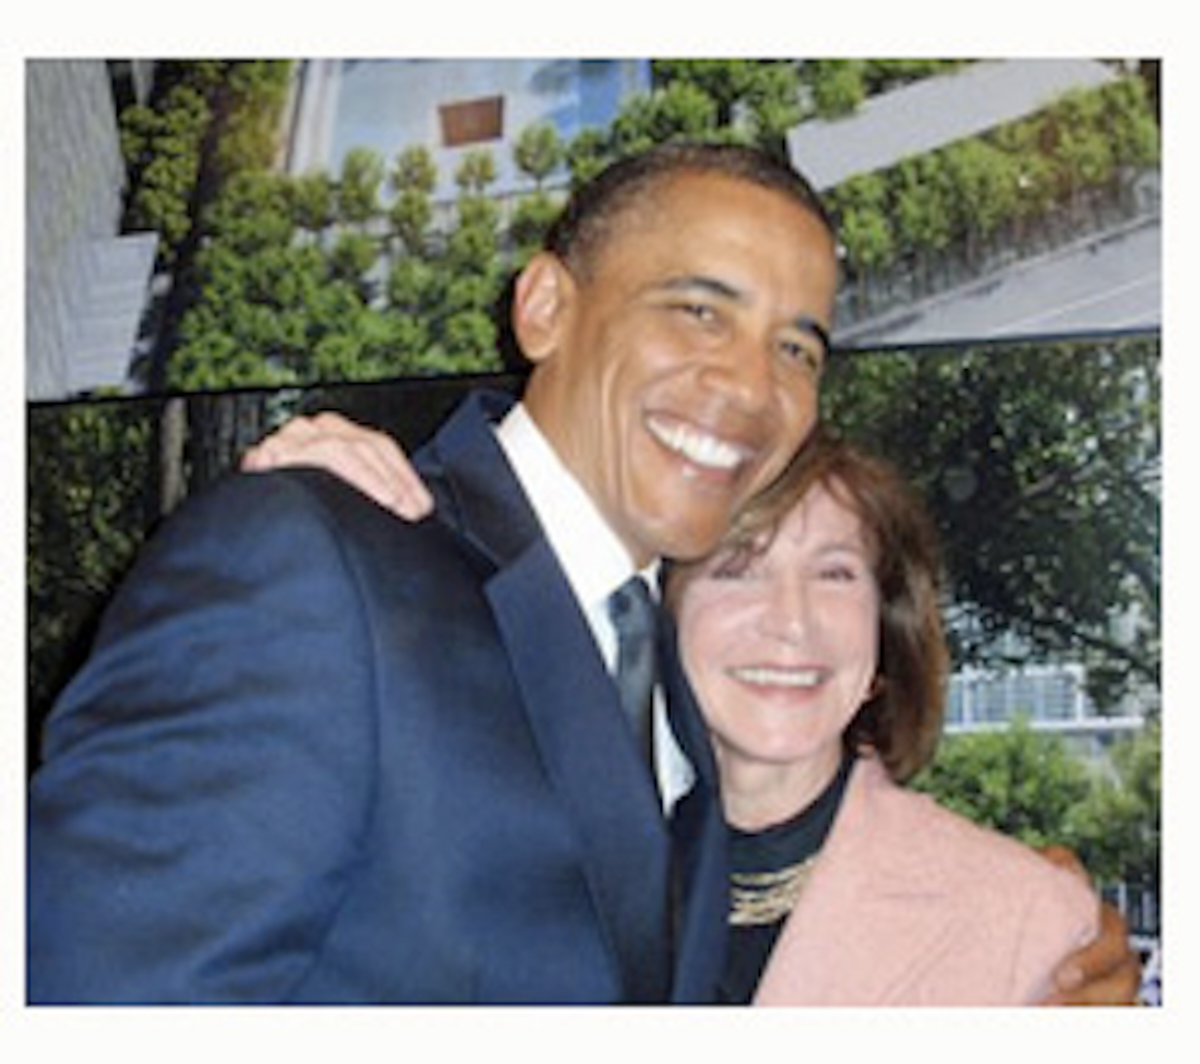 The author with President Obama